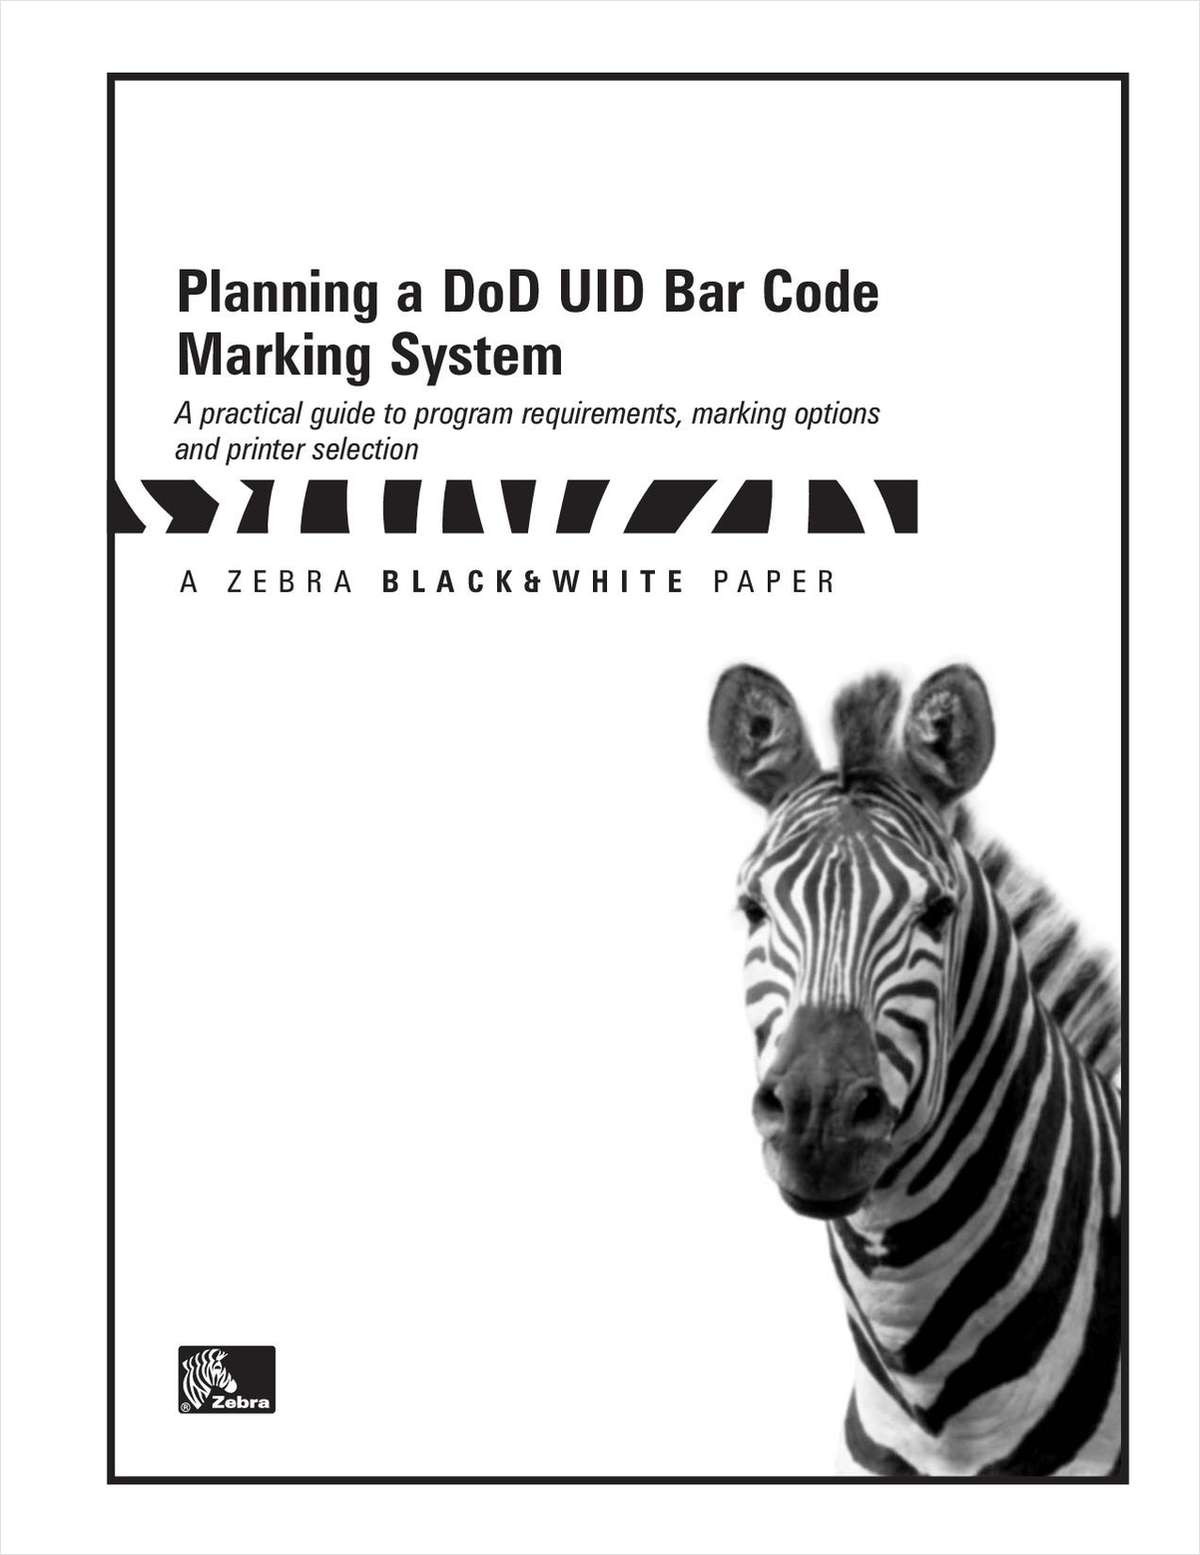 Free Guide to Planning a DoD UID Bar Code Marking System